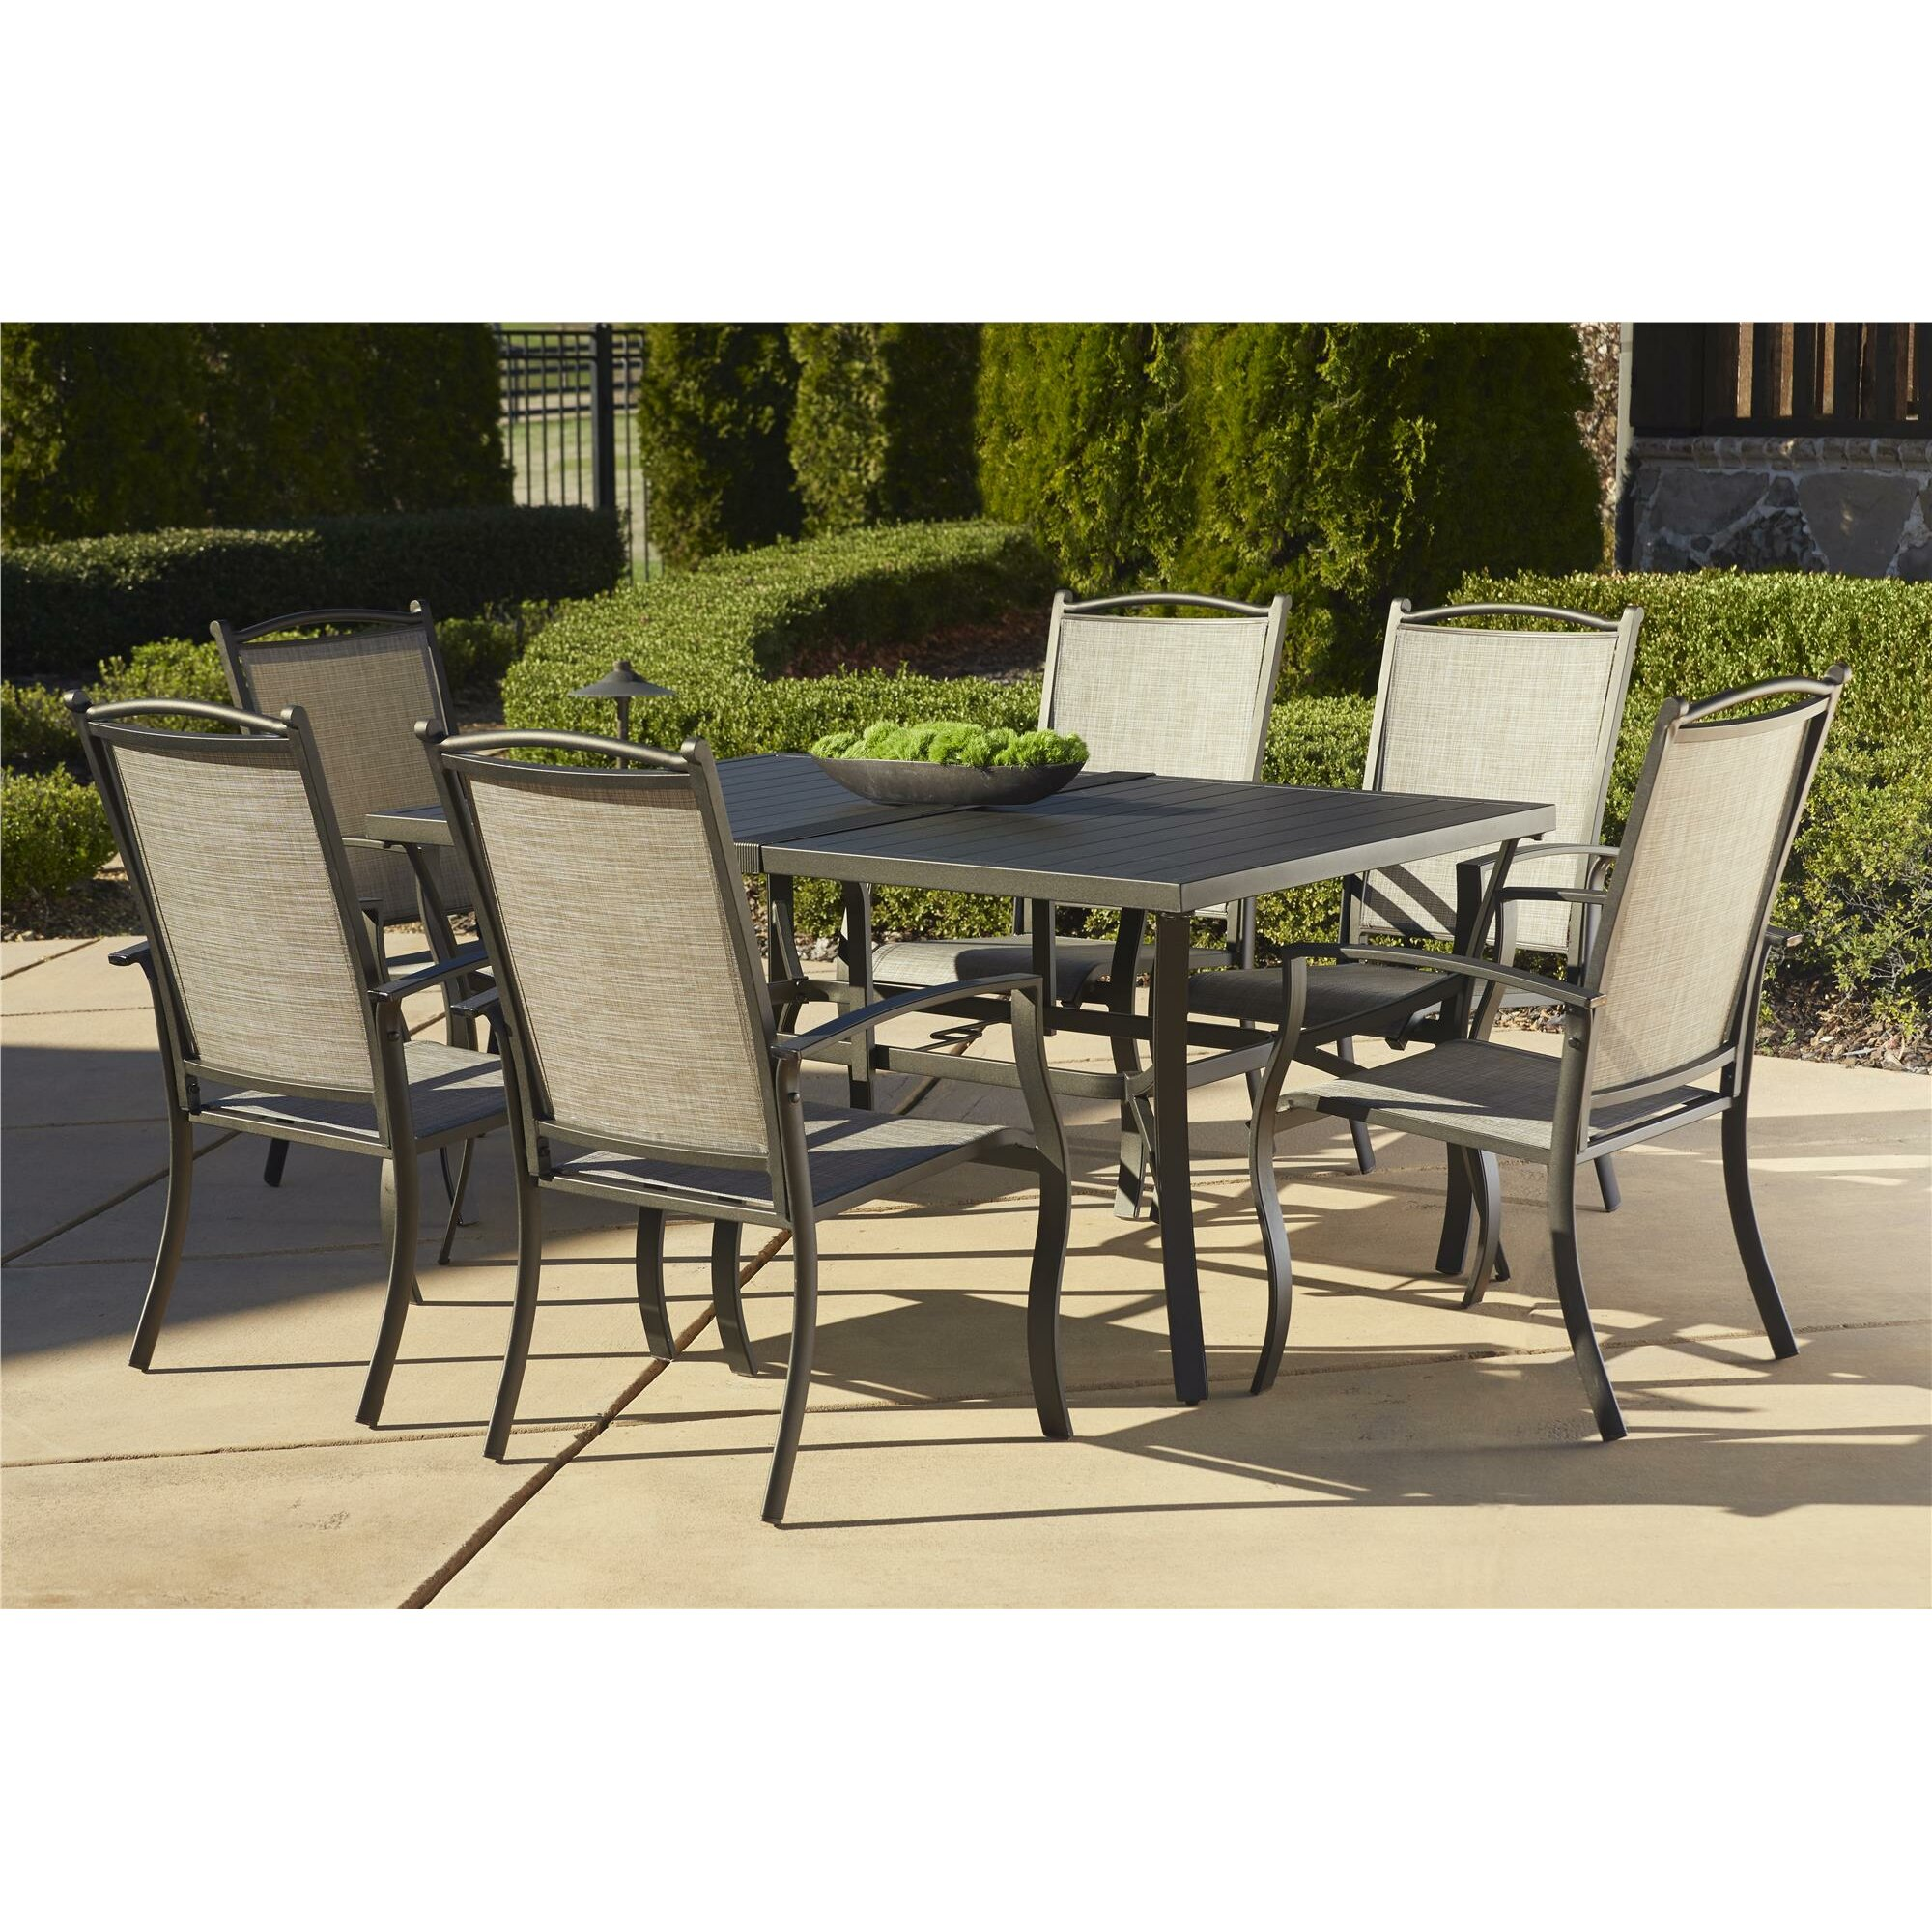 three posts pavilion 7 piece dining set reviews wayfair. Black Bedroom Furniture Sets. Home Design Ideas